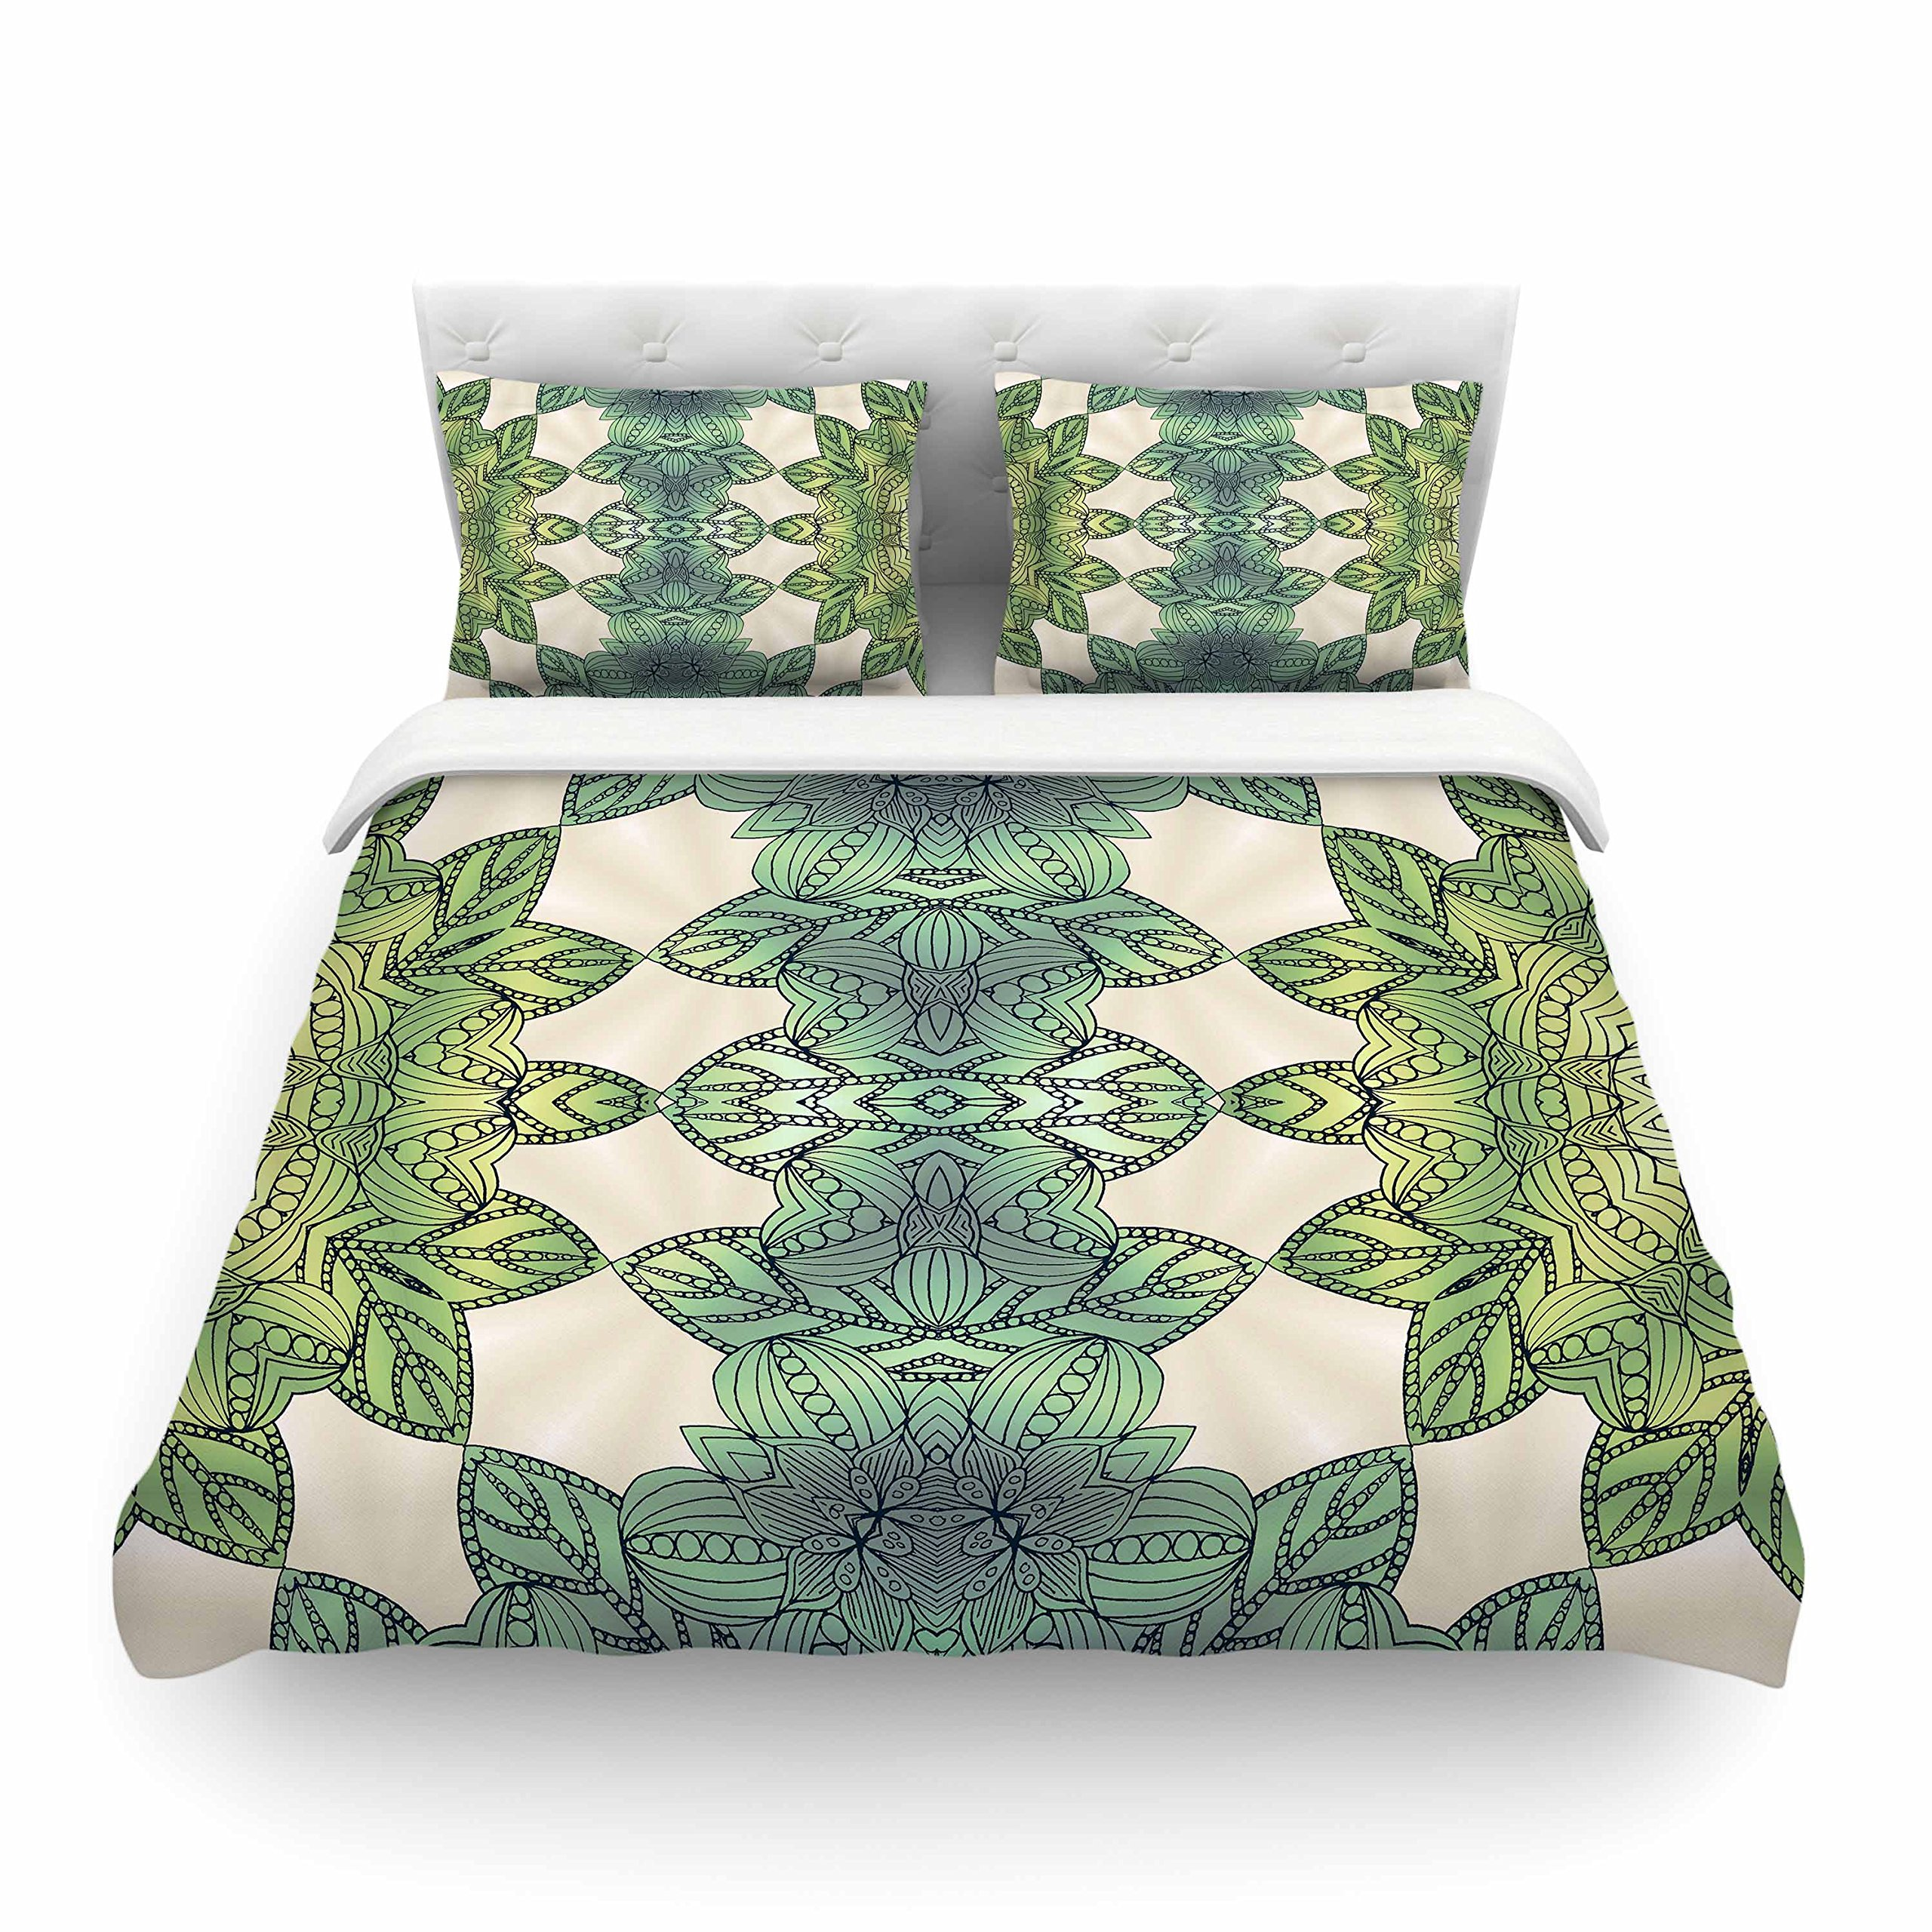 KESS InHouse Art Love Passion ''Forest Leaves'' Green Teal Celtic Abstract King Cotton Duvet Cover, 104 x 88''